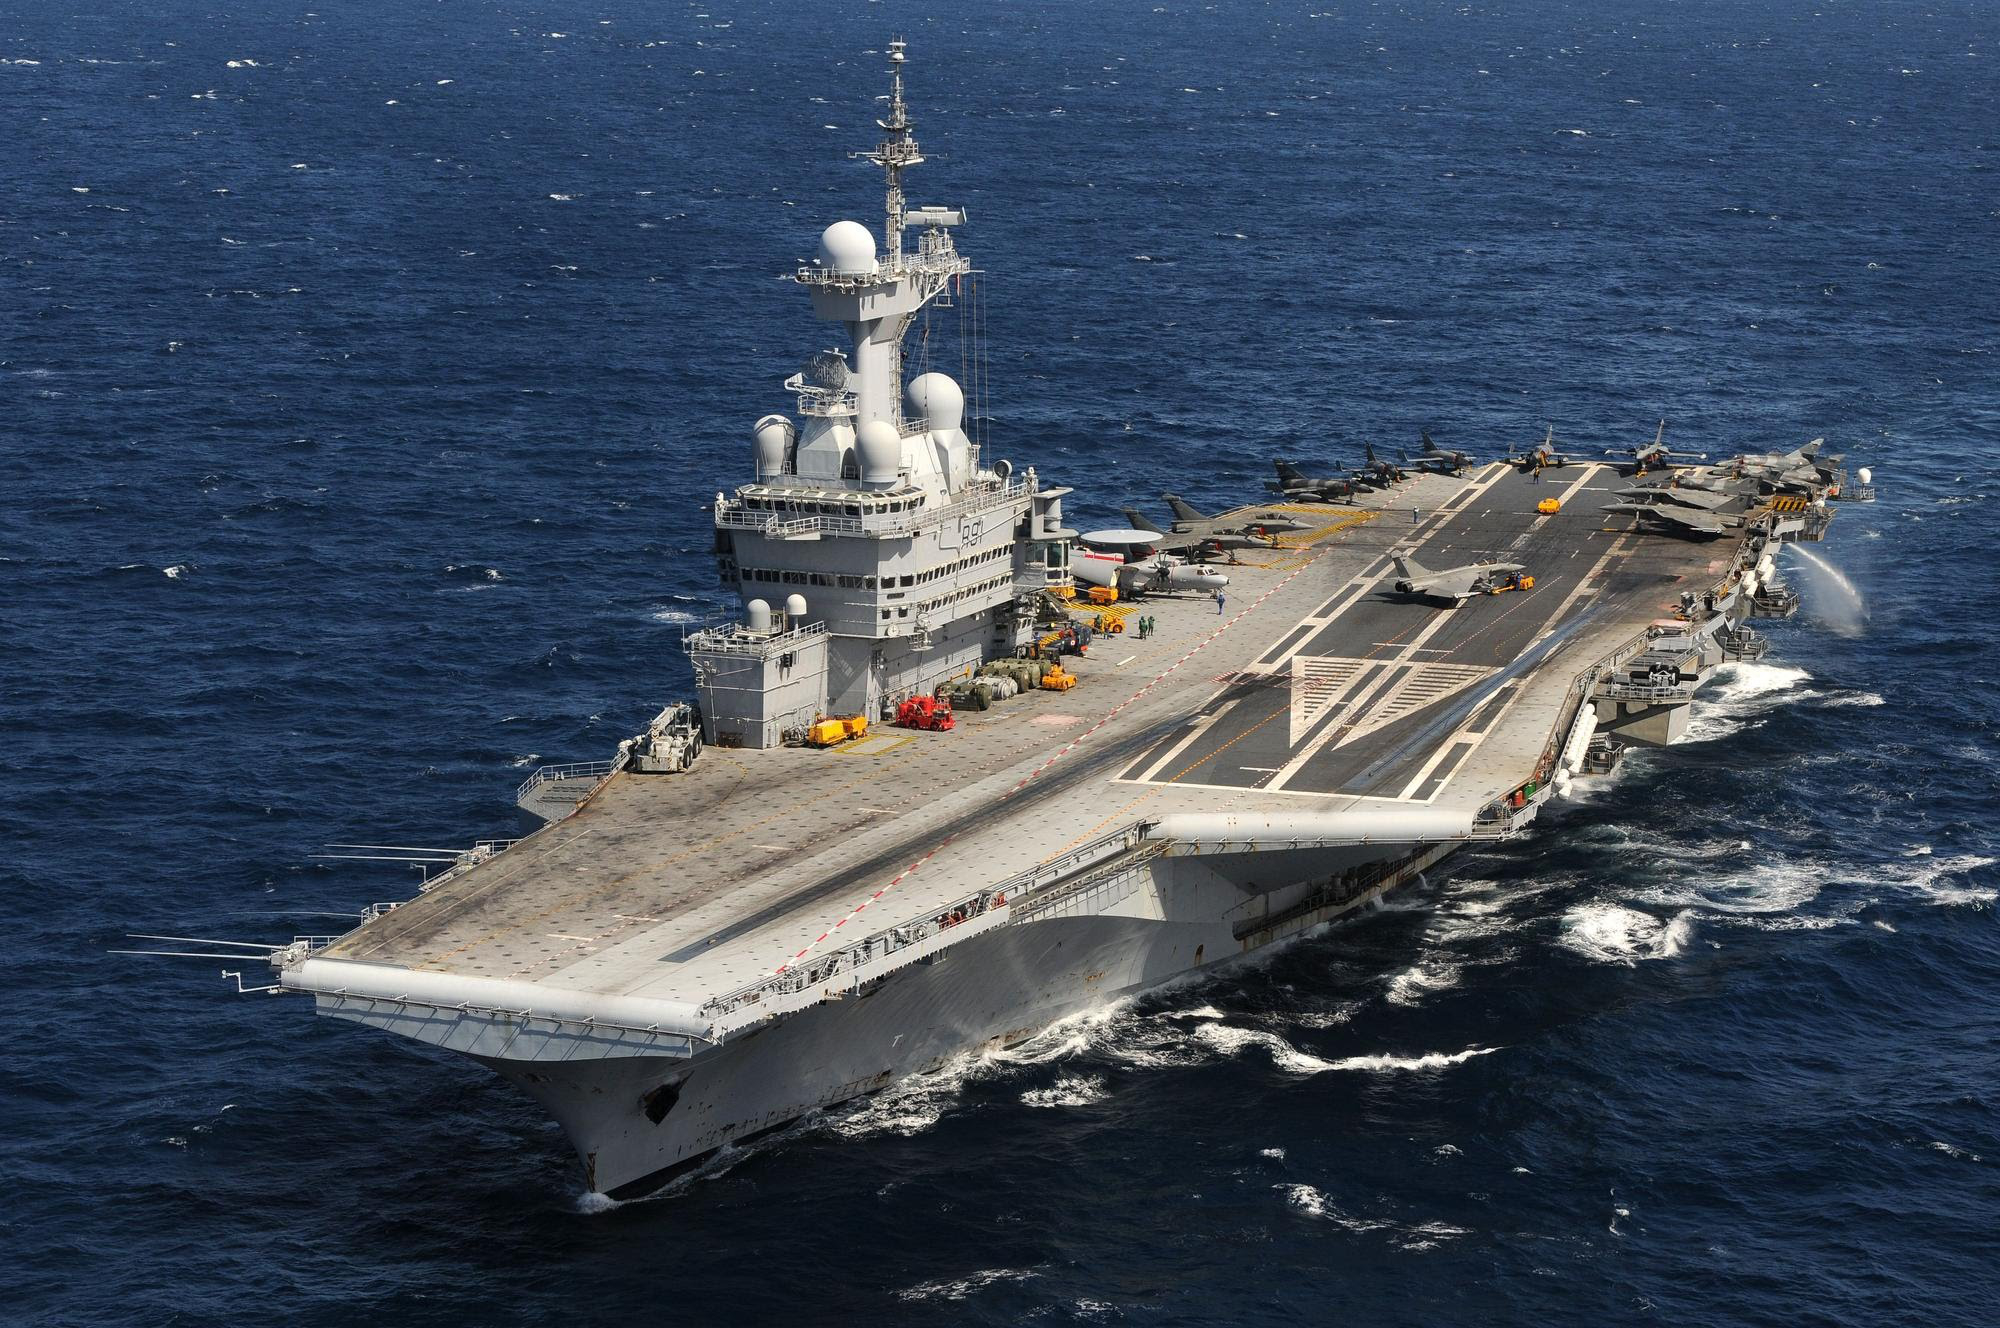 French aircraft carrier charles de gaulle r91 hd wallpaper background image 2000x1328 id - Porte avion charle de gaule ...